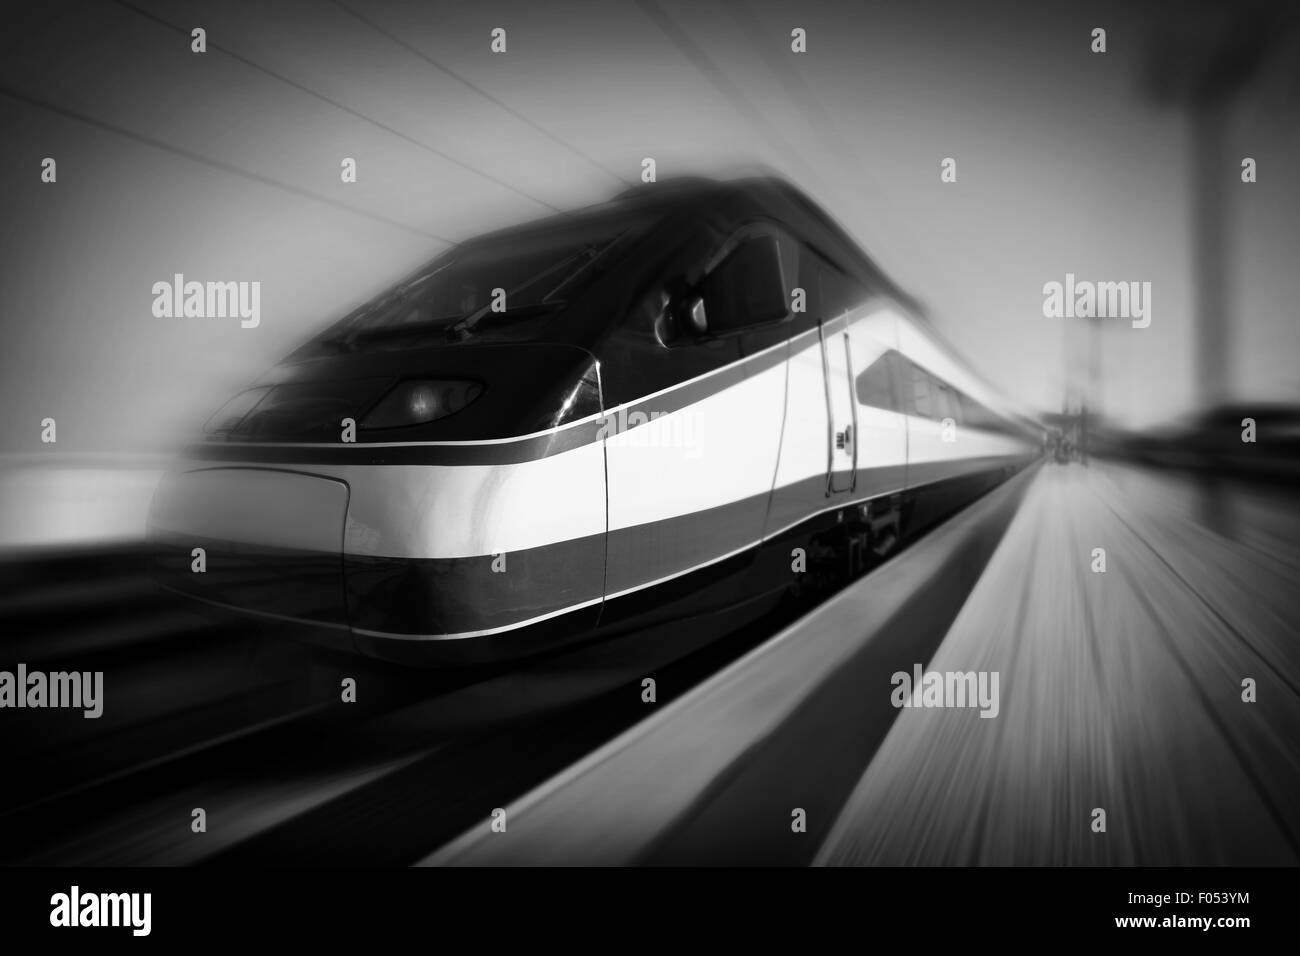 High-speed modern intercity train with motion blur, abstract. Monochromatic - Stock Image